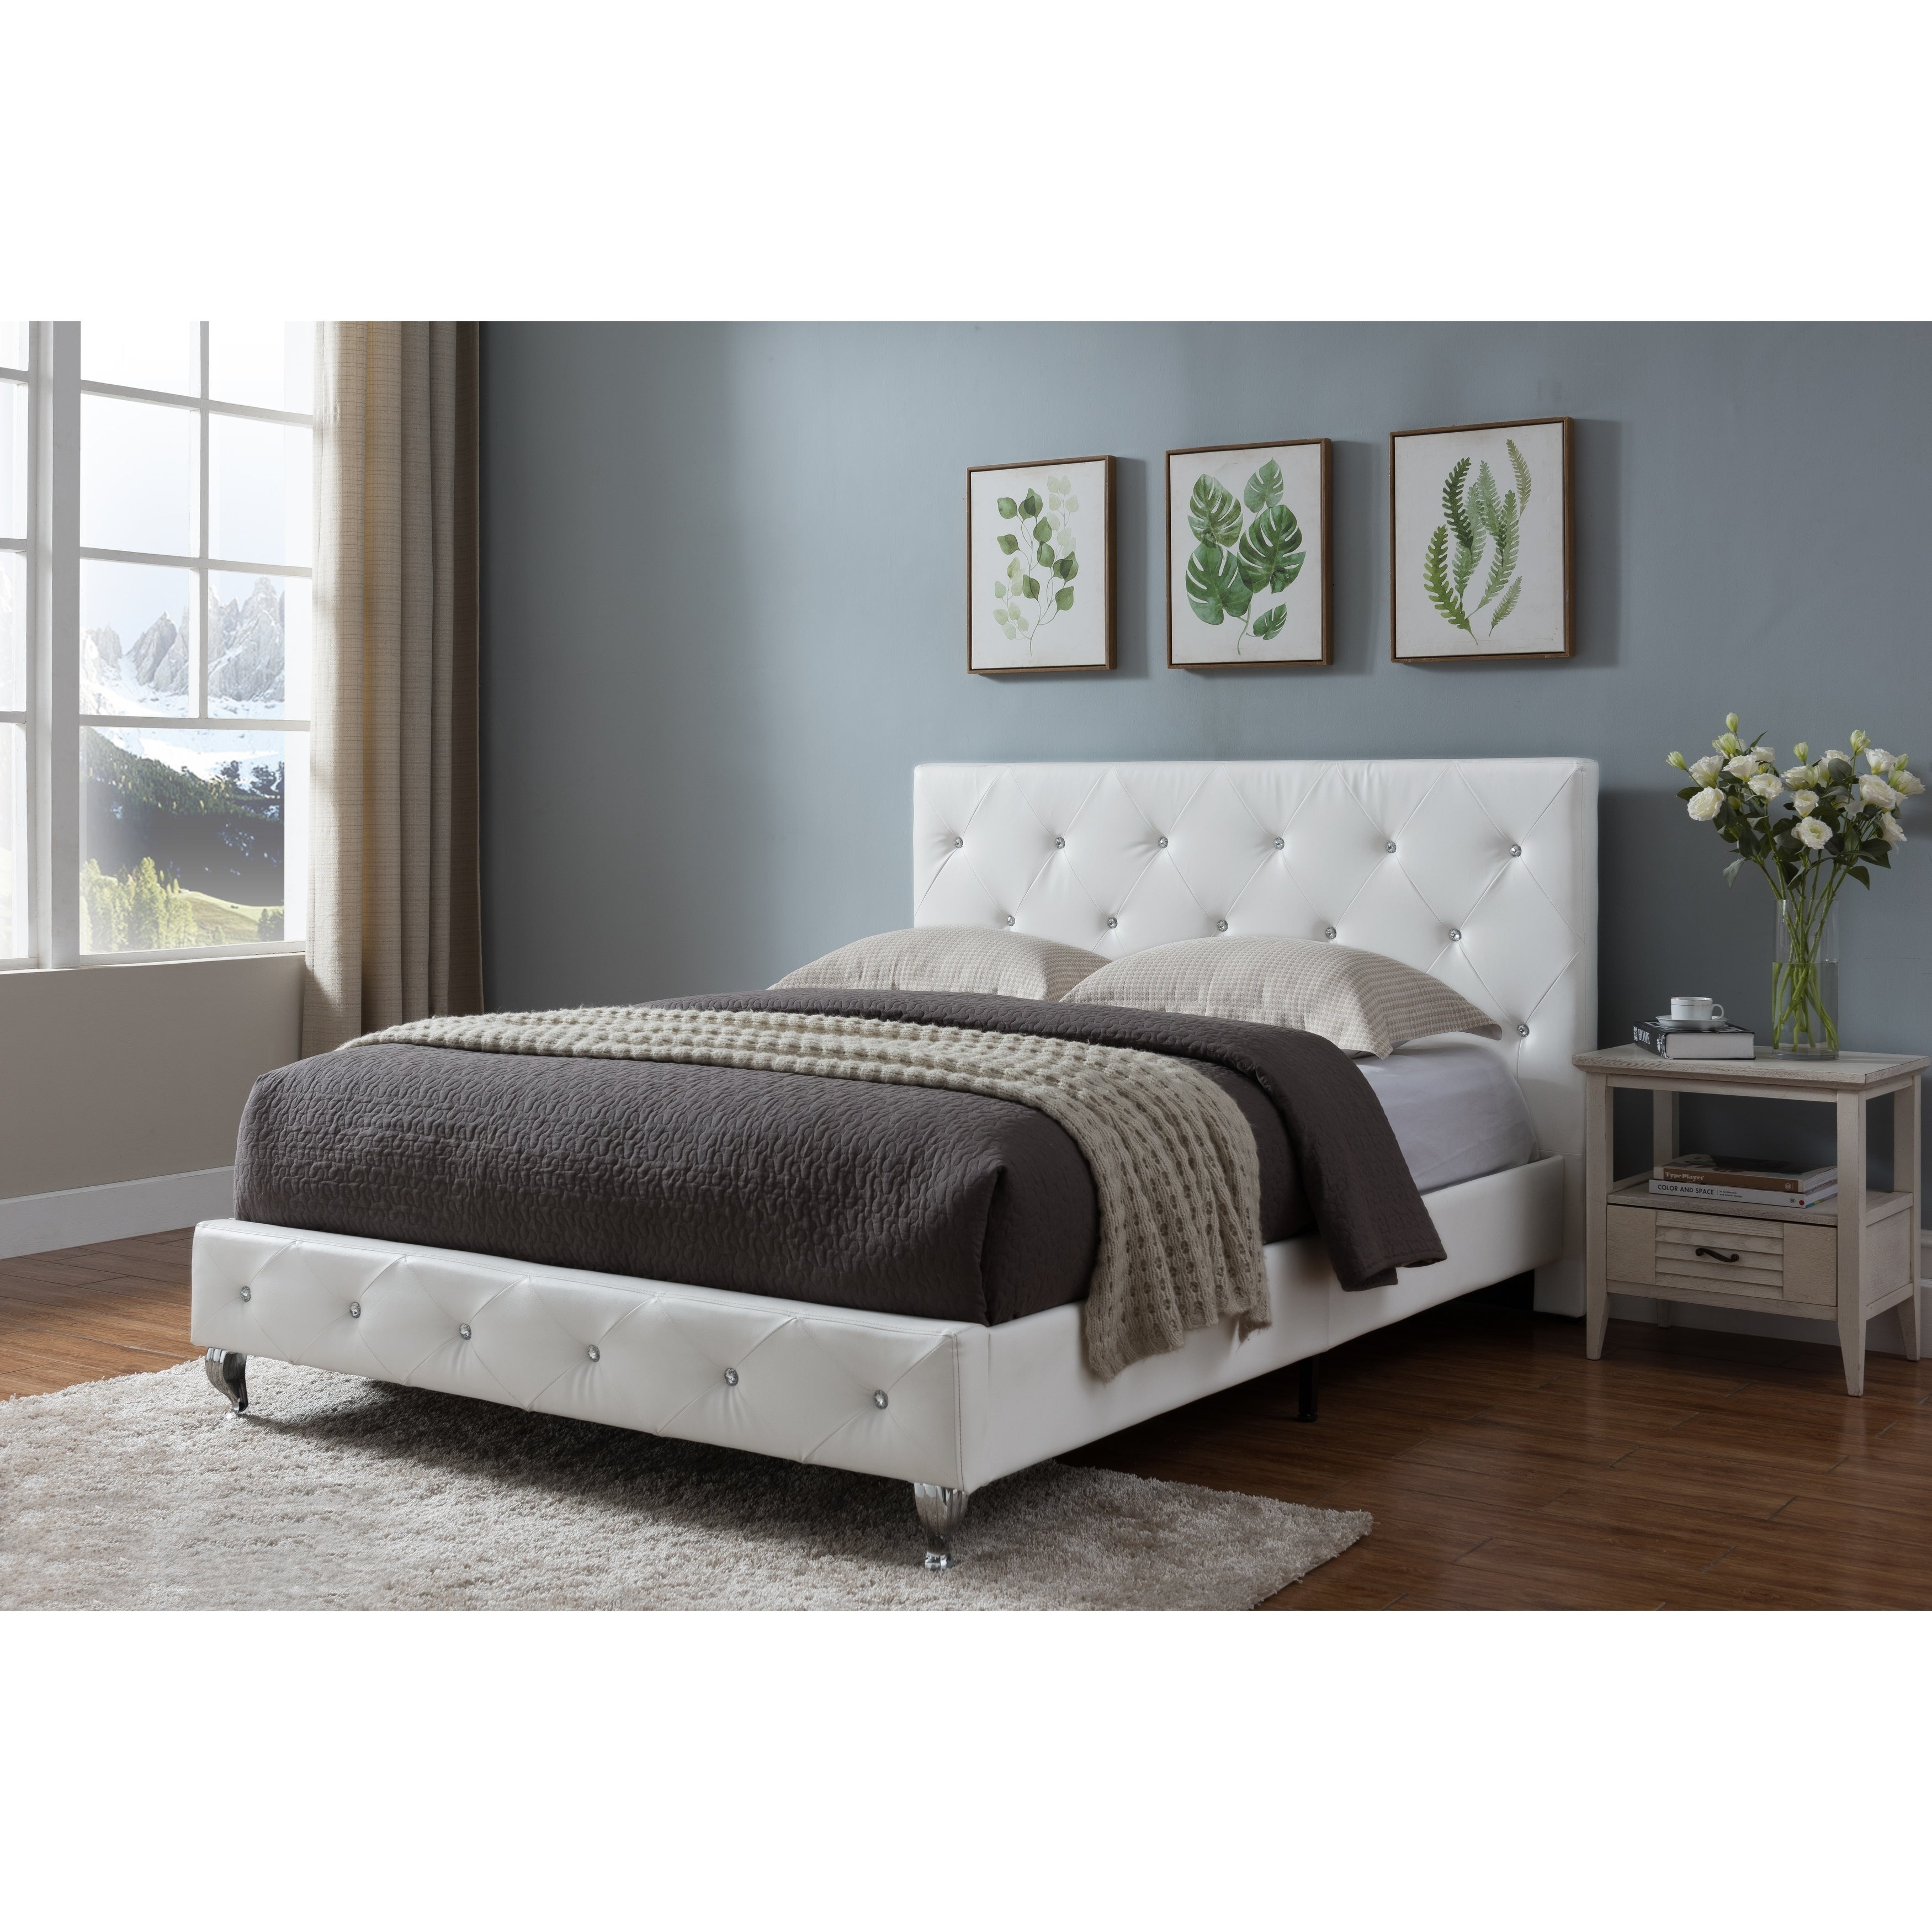 Shop Black Friday Deals On King Size Upholstered Beds White Faux Leather Overstock 24240107